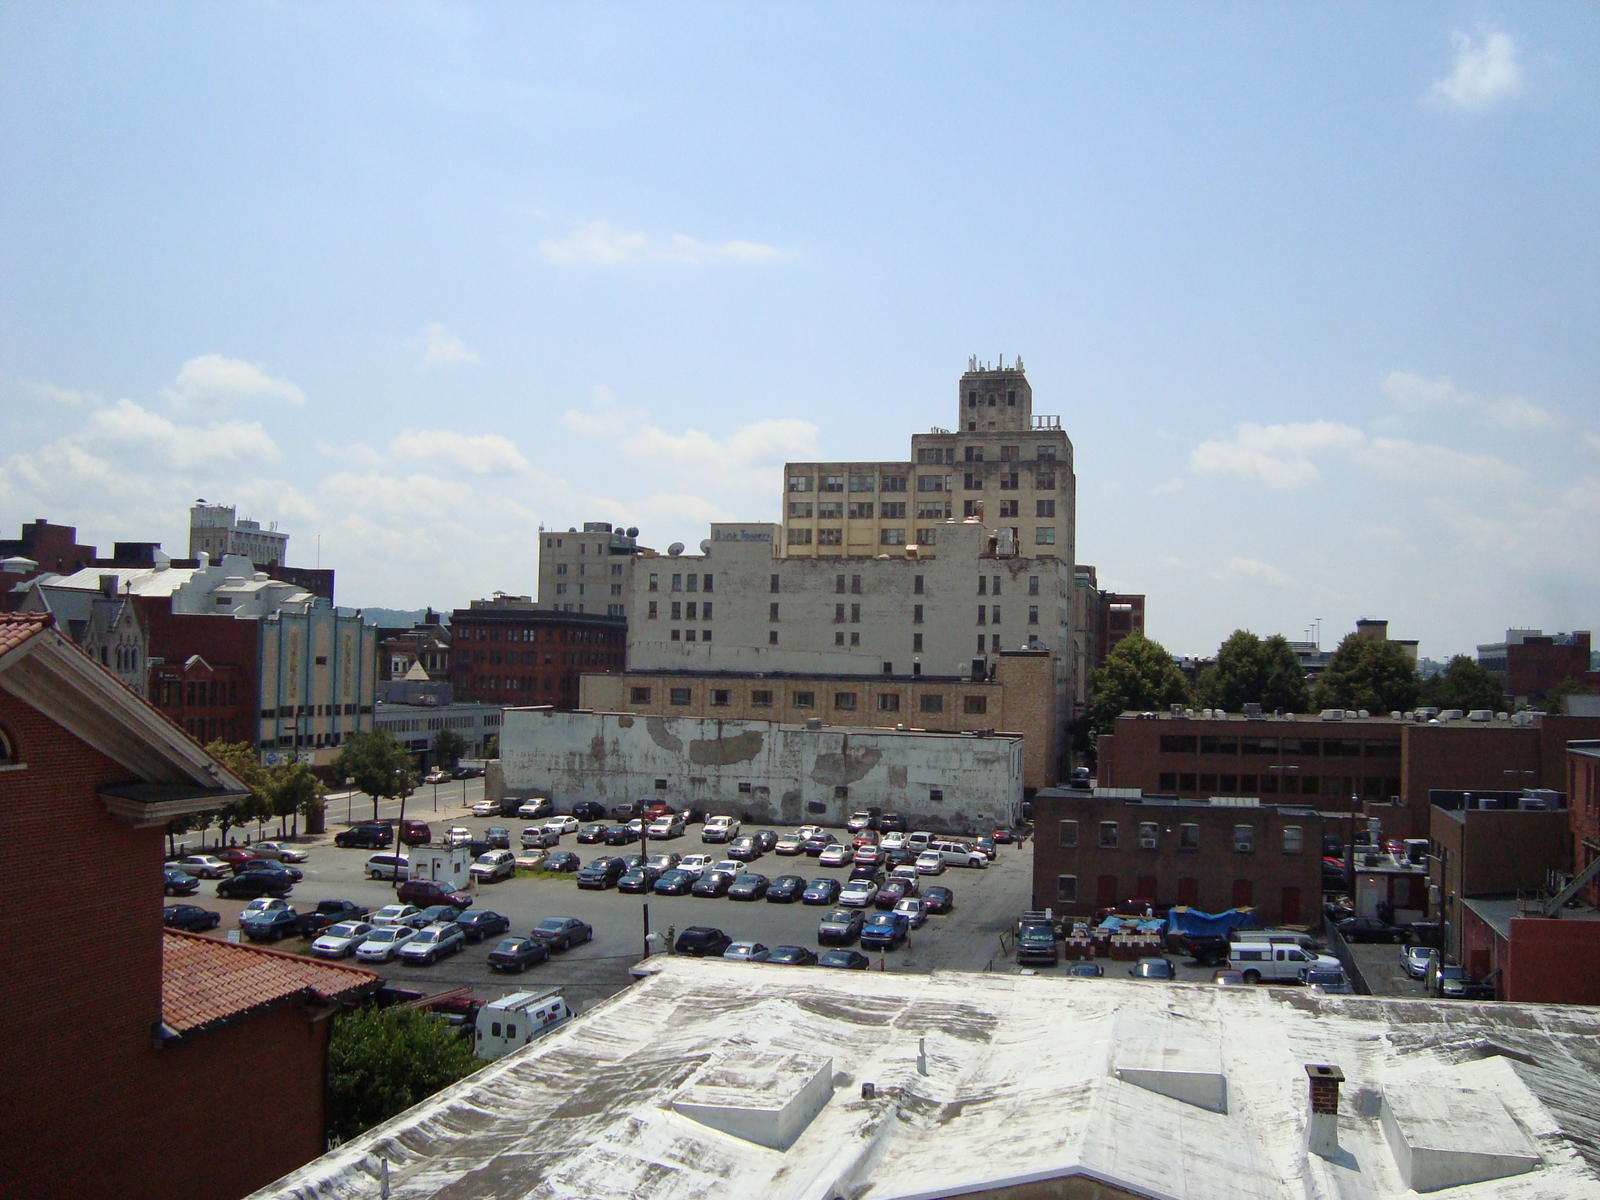 Snap Shots Of Downtown Scranton Penn New Home Area